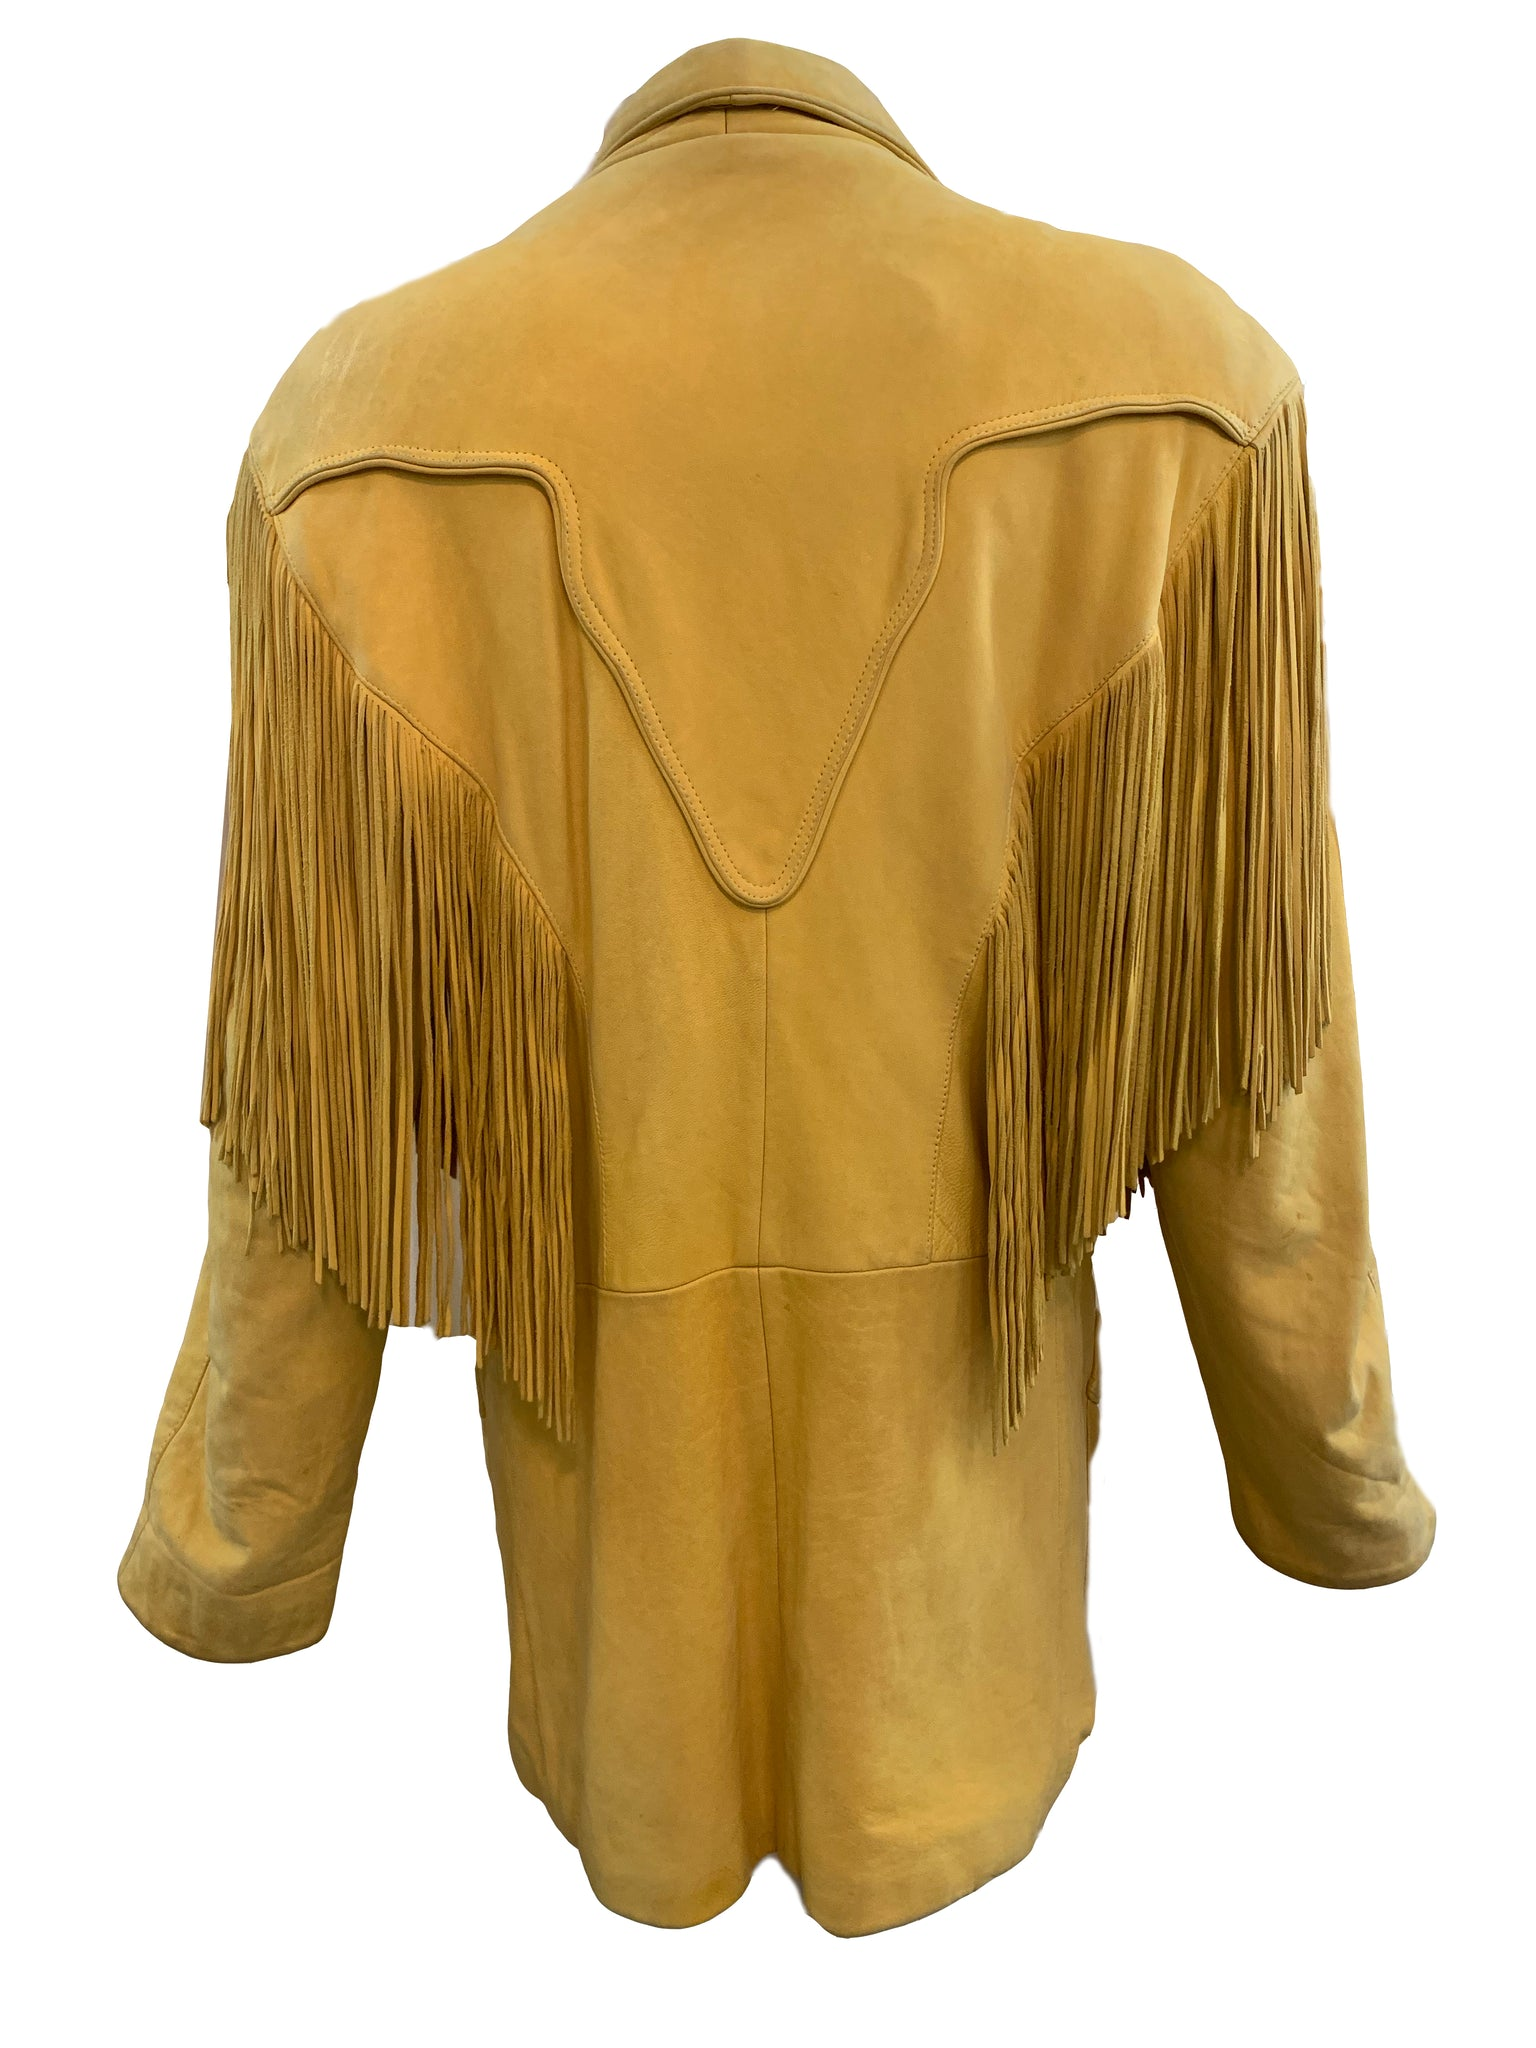 Continental 80s Leather Fringed Oversized Distressed Jacket BACK 3 of 5